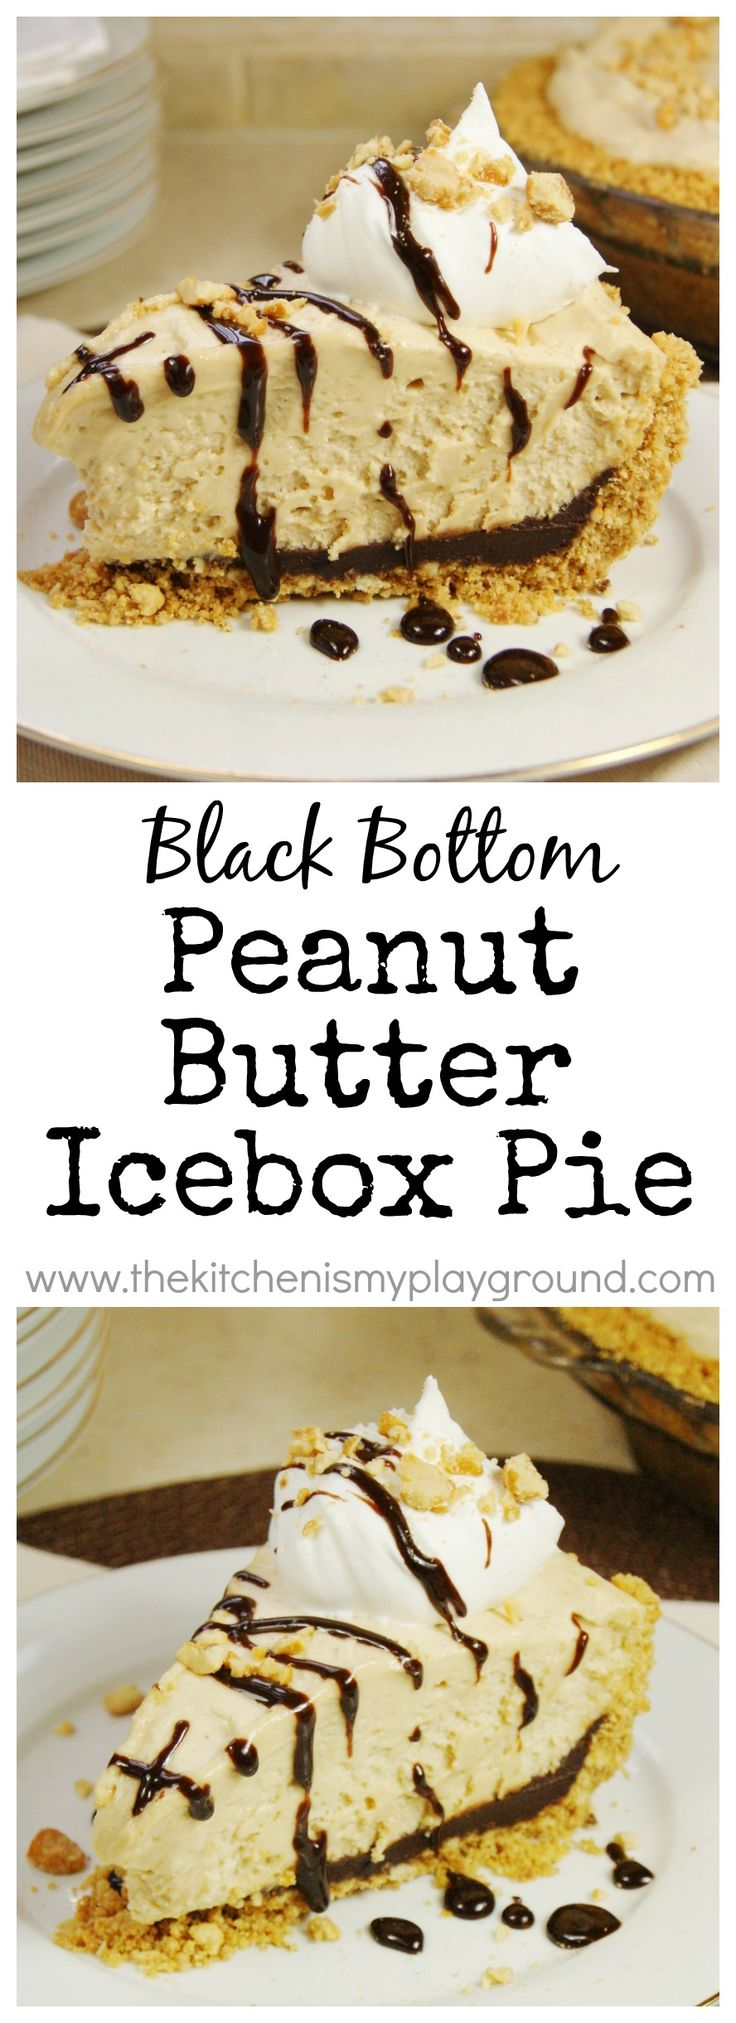 Black Bottom Peanut Butter Icebox Pie ... creamy peanut butter mousse ...